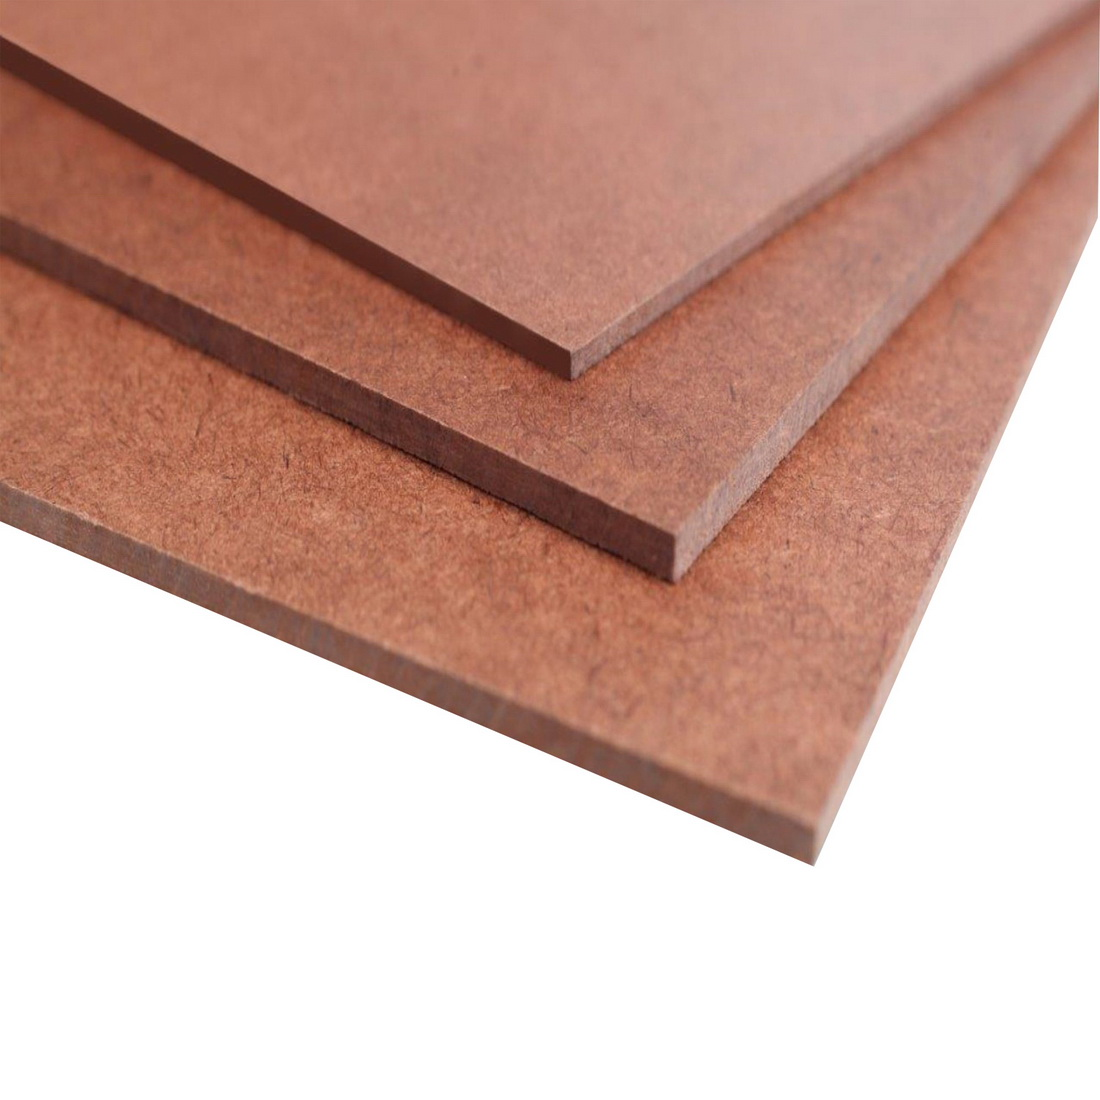 2440 x 1200 x 4.5mm Tempered Hardboard Smooth Two Side